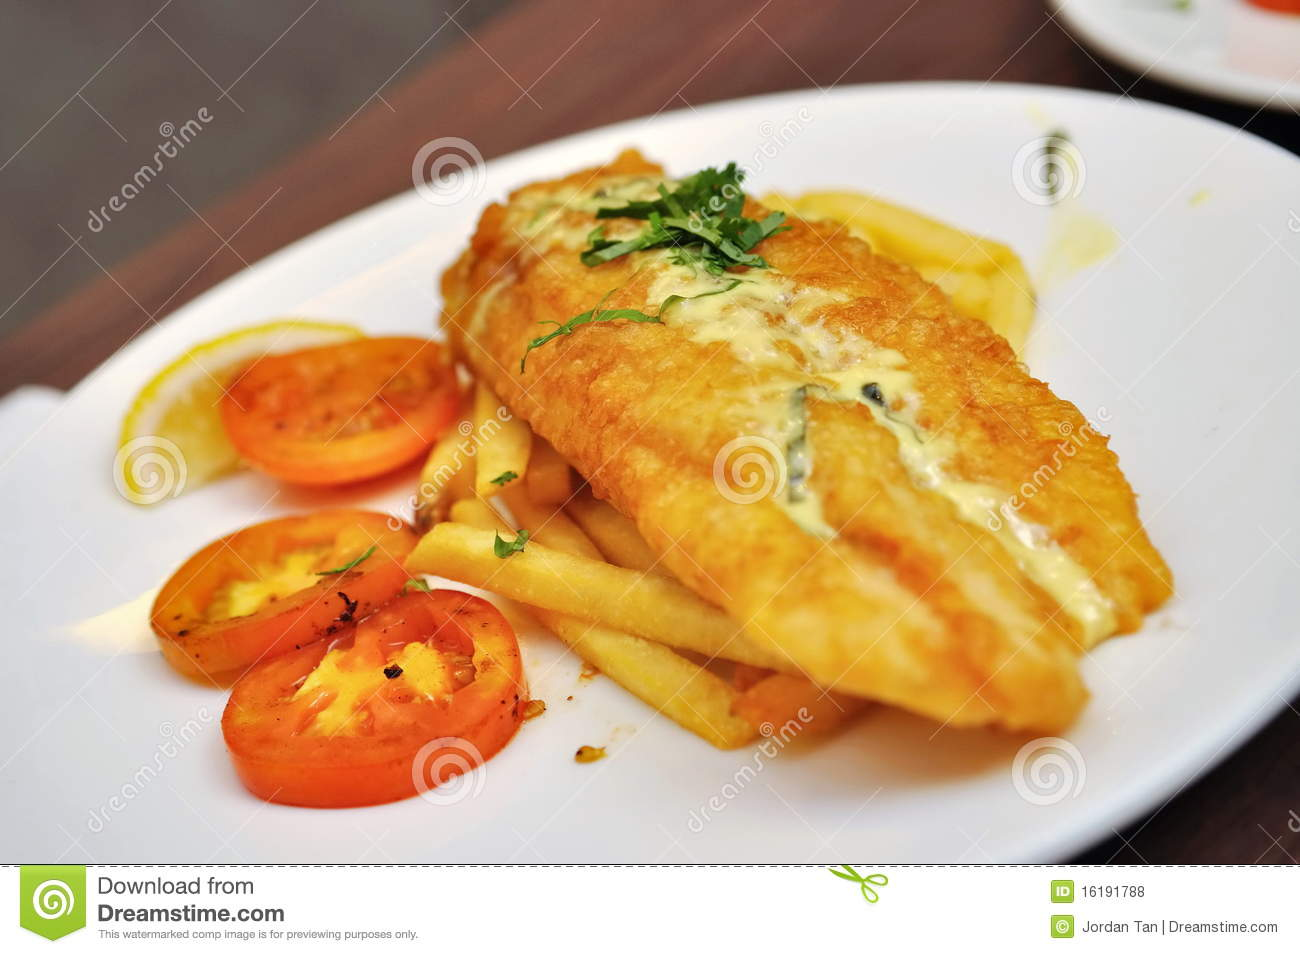 Fried dory fish with fries stock photo. Image of fried ...